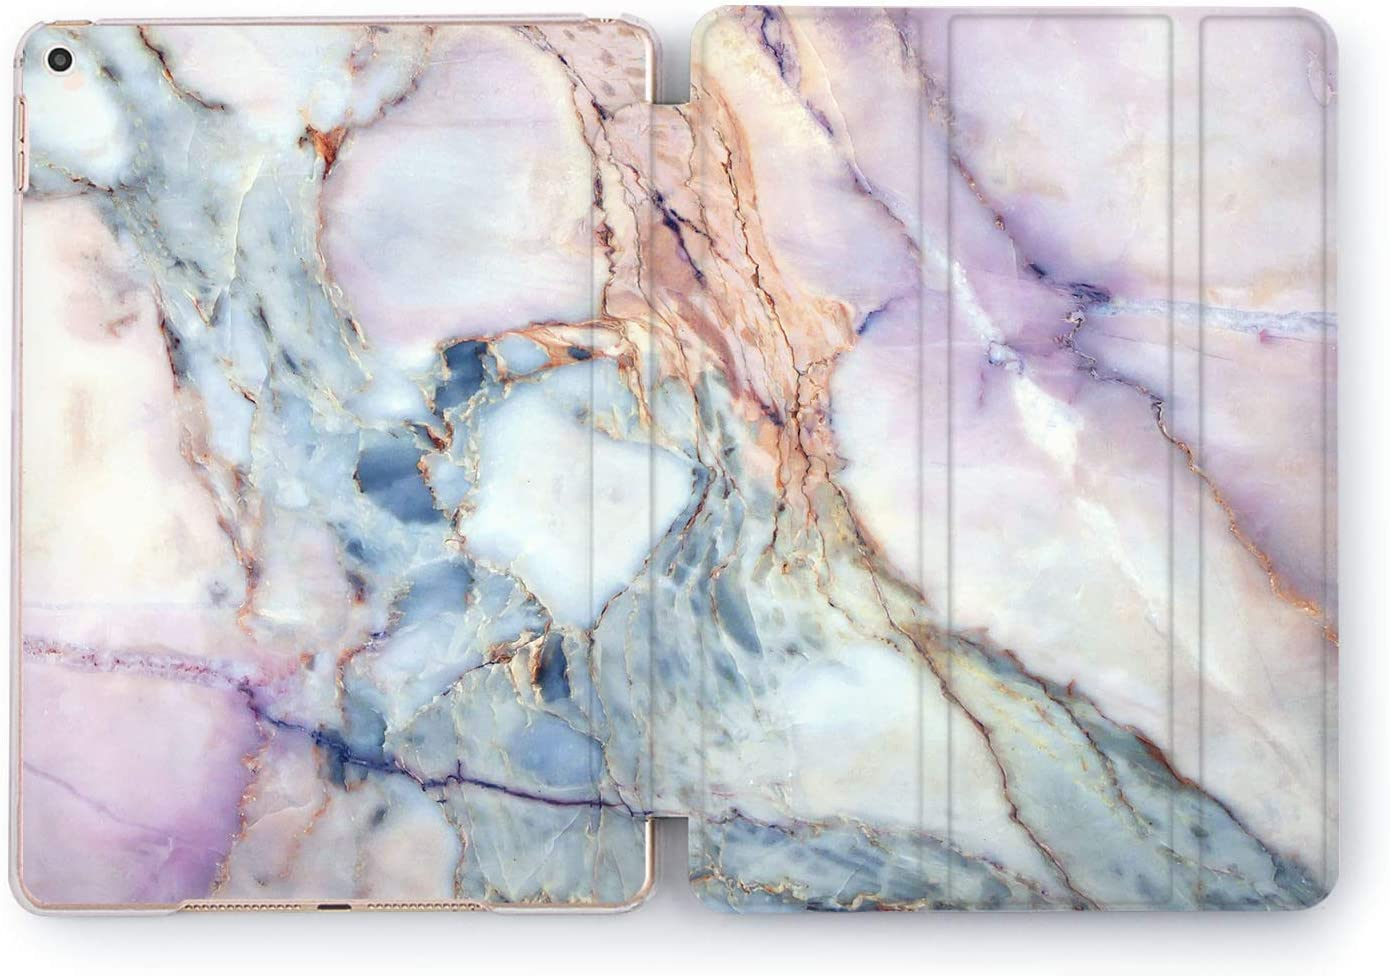 Wonder Wild Case Compatible with Apple iPad Multicolored Mini 1 2 3 4 Watercolor Air 2 Pro 10.5 12.9 Blue Purple Pink 11 10.2 9.7 inch Protective Cover 5th 6th Gen Marble Stone Stand Cute